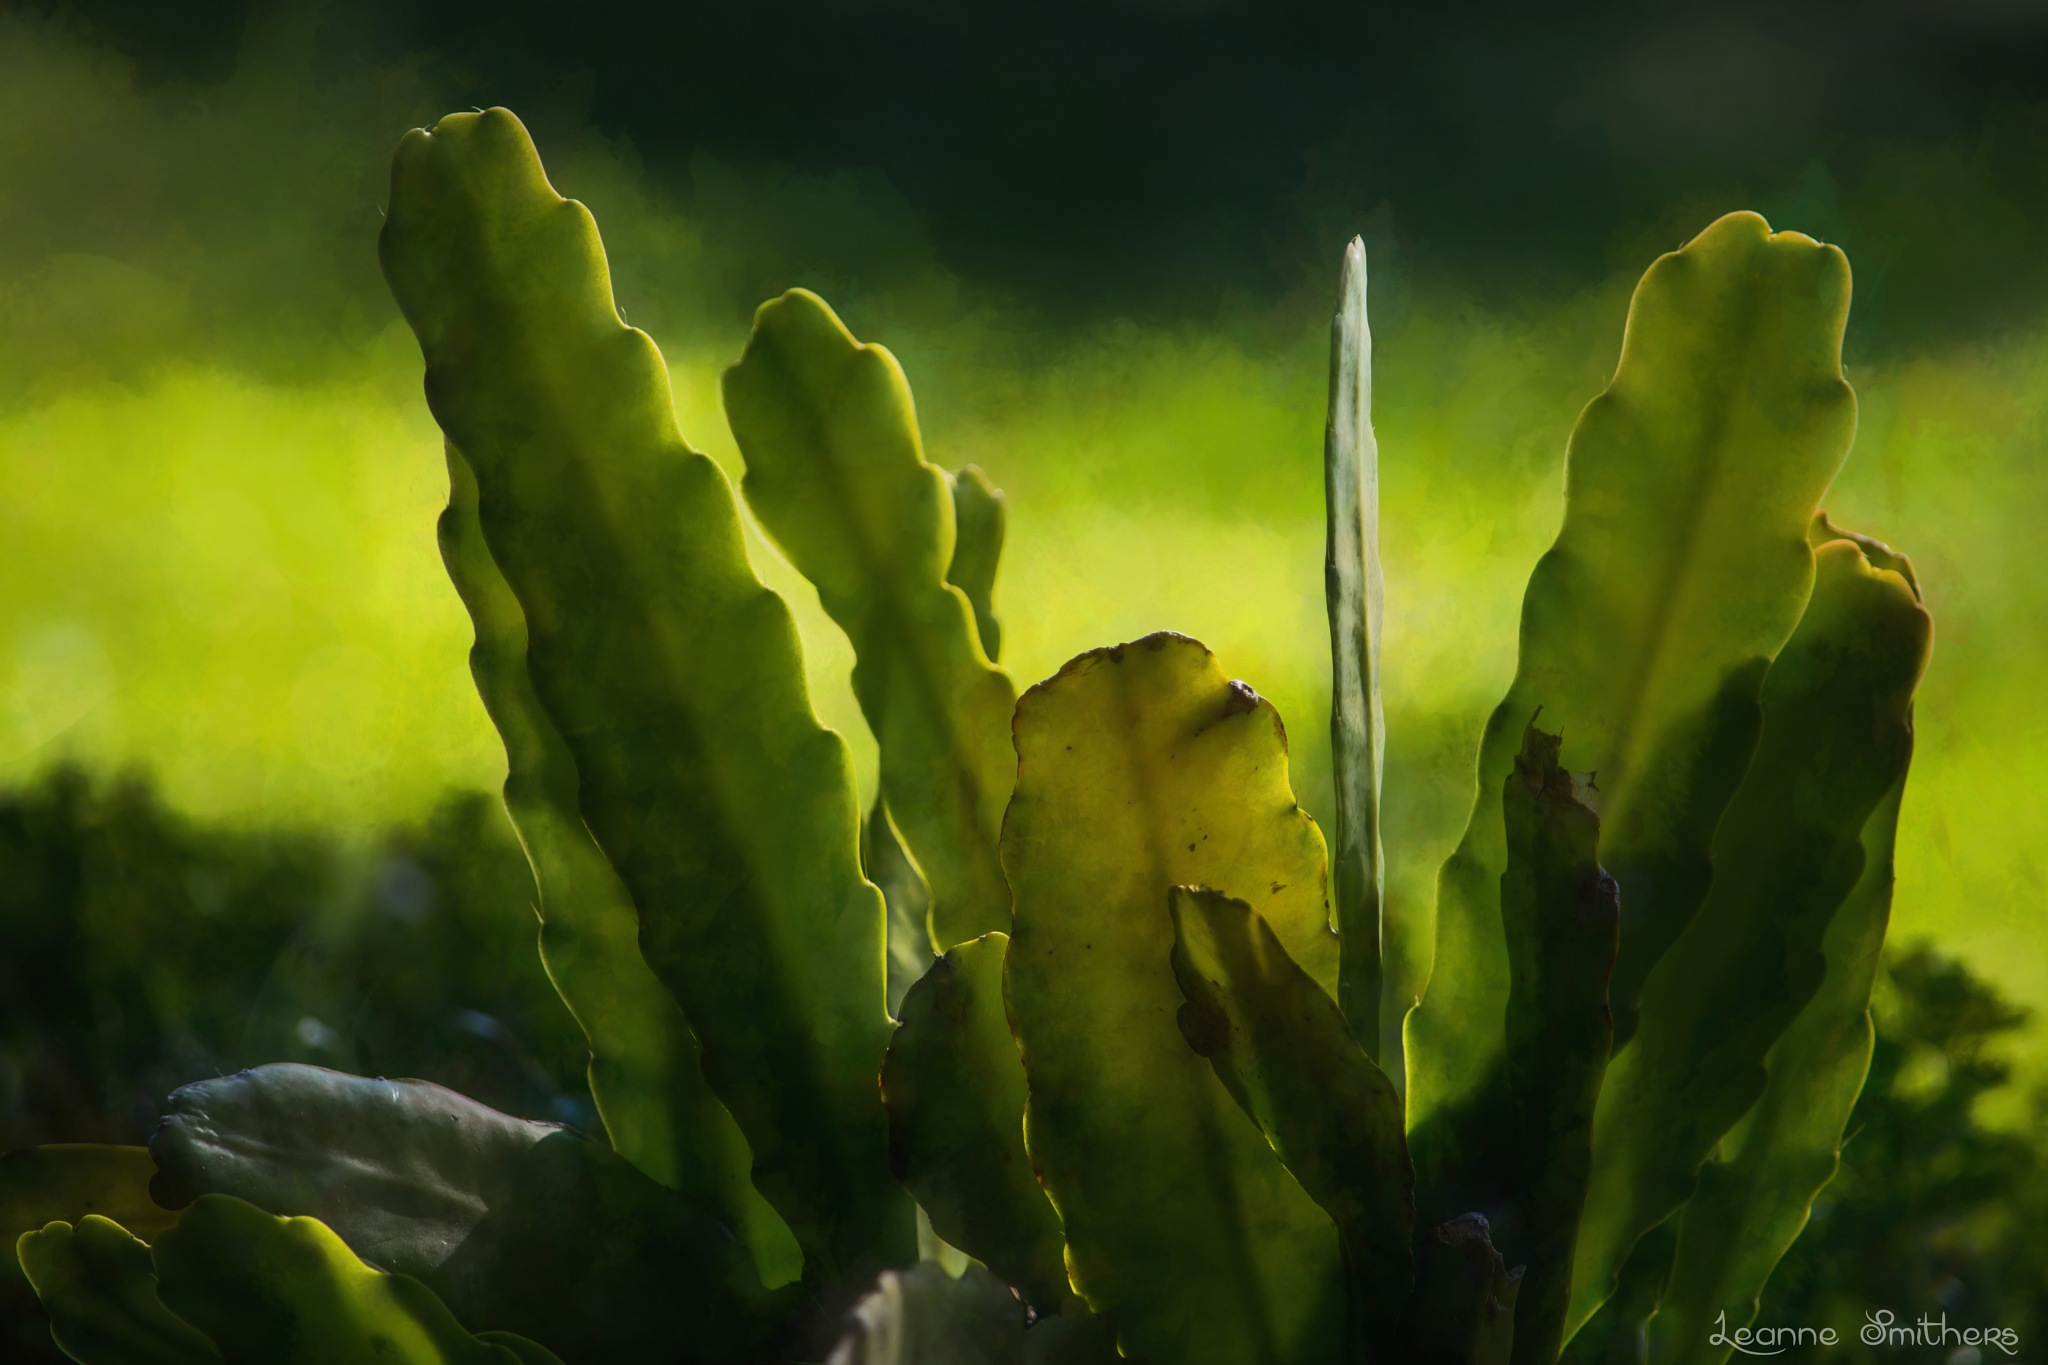 Cactus by Leanne Smithers